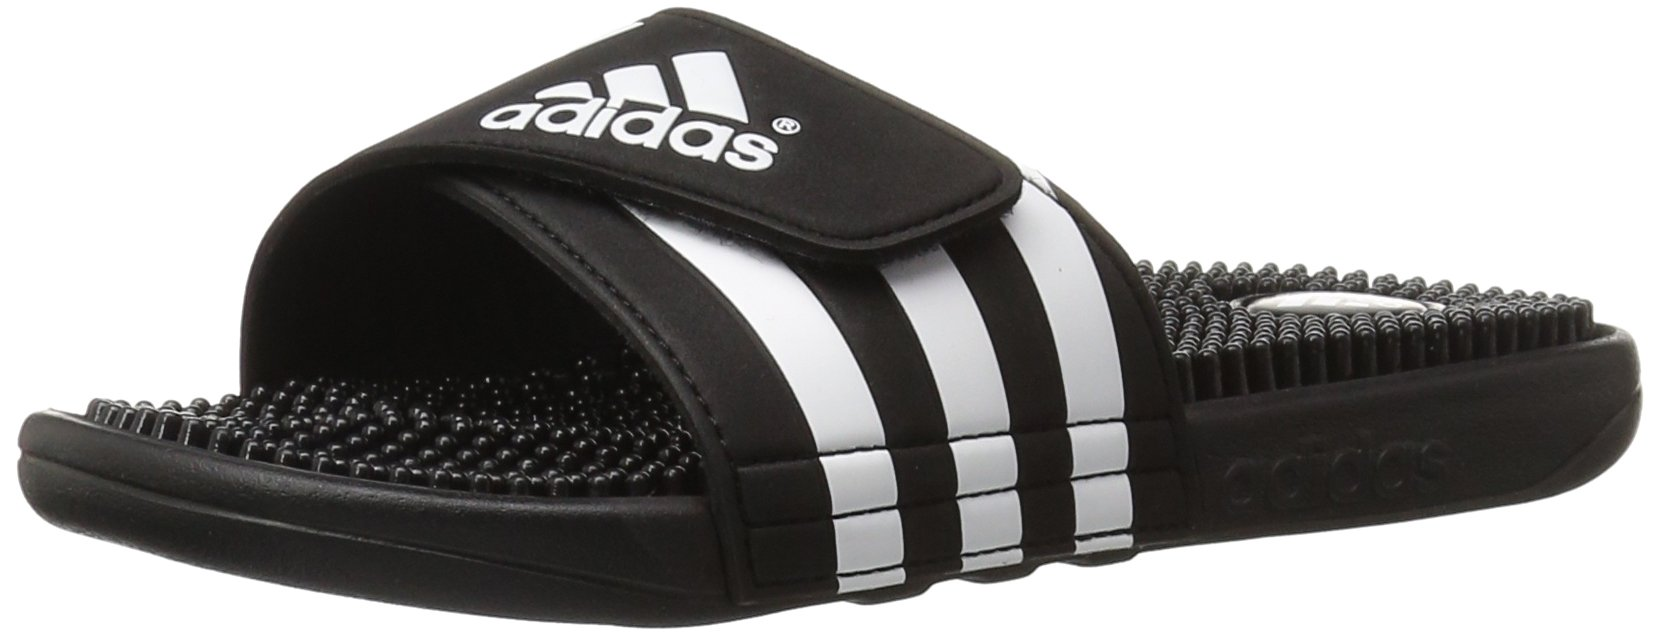 adidas Originals Men's Adissage Slides,Black/Black/White,13 M US